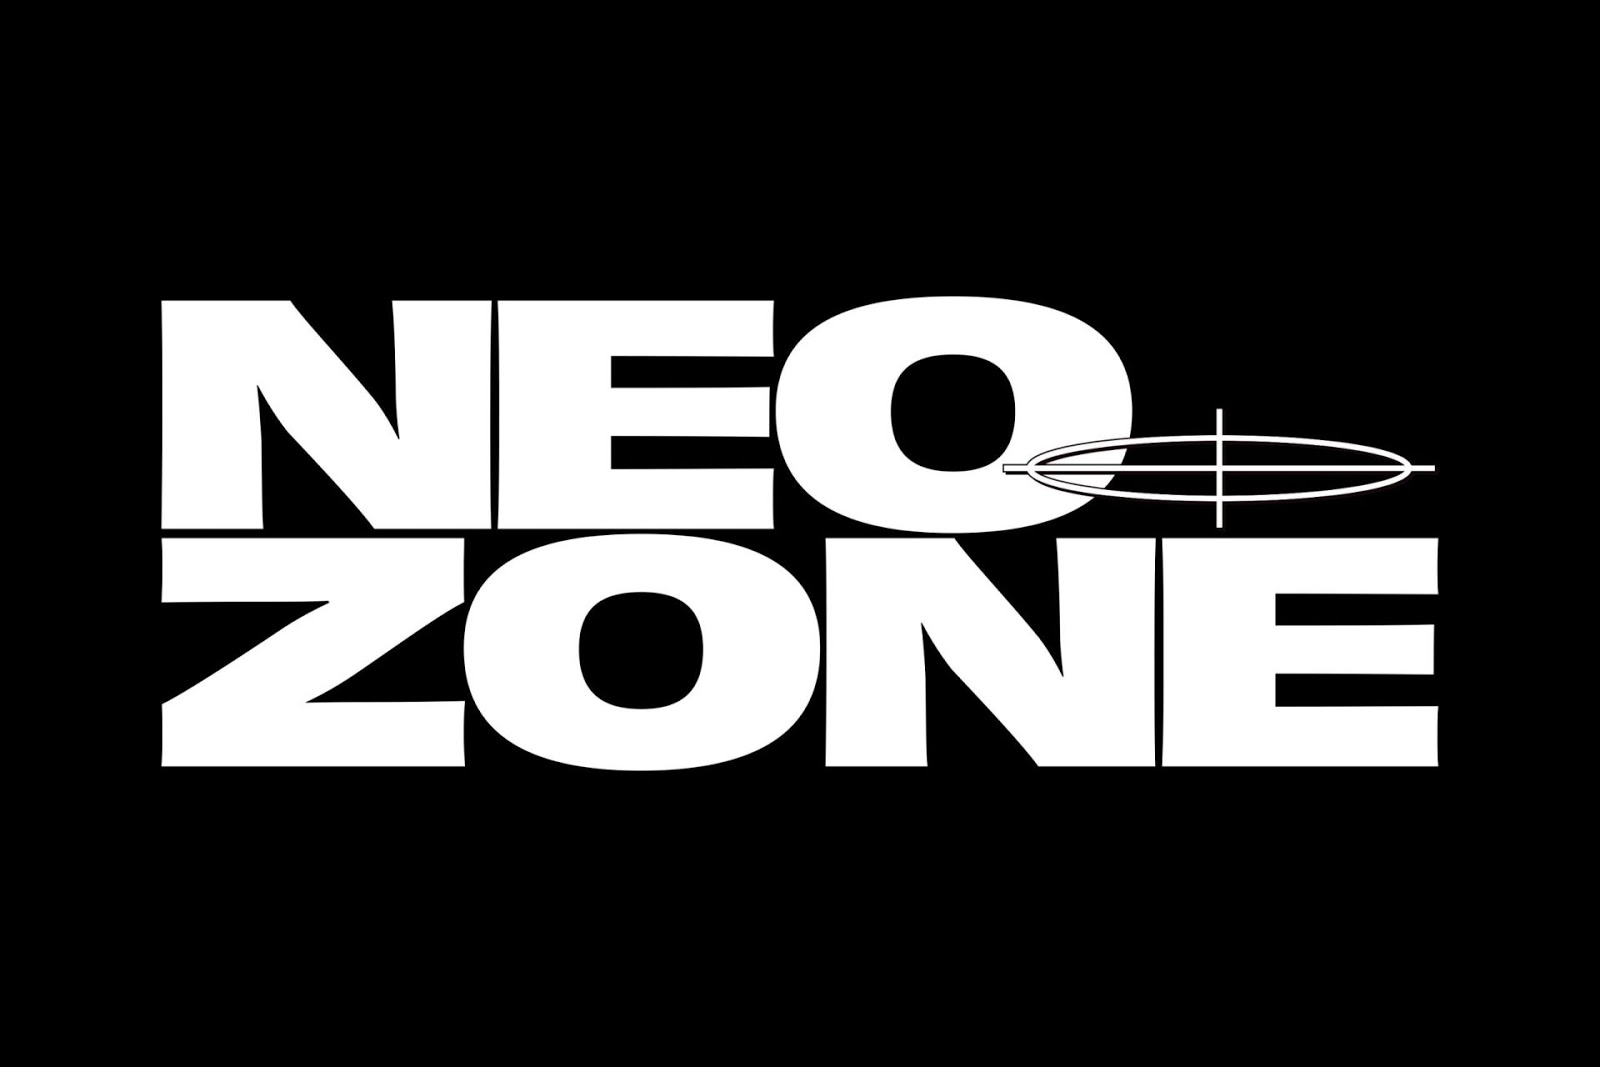 NCT 127 Release Full Comeback Schedule of The 2nd Full Album 'Neo Zone'